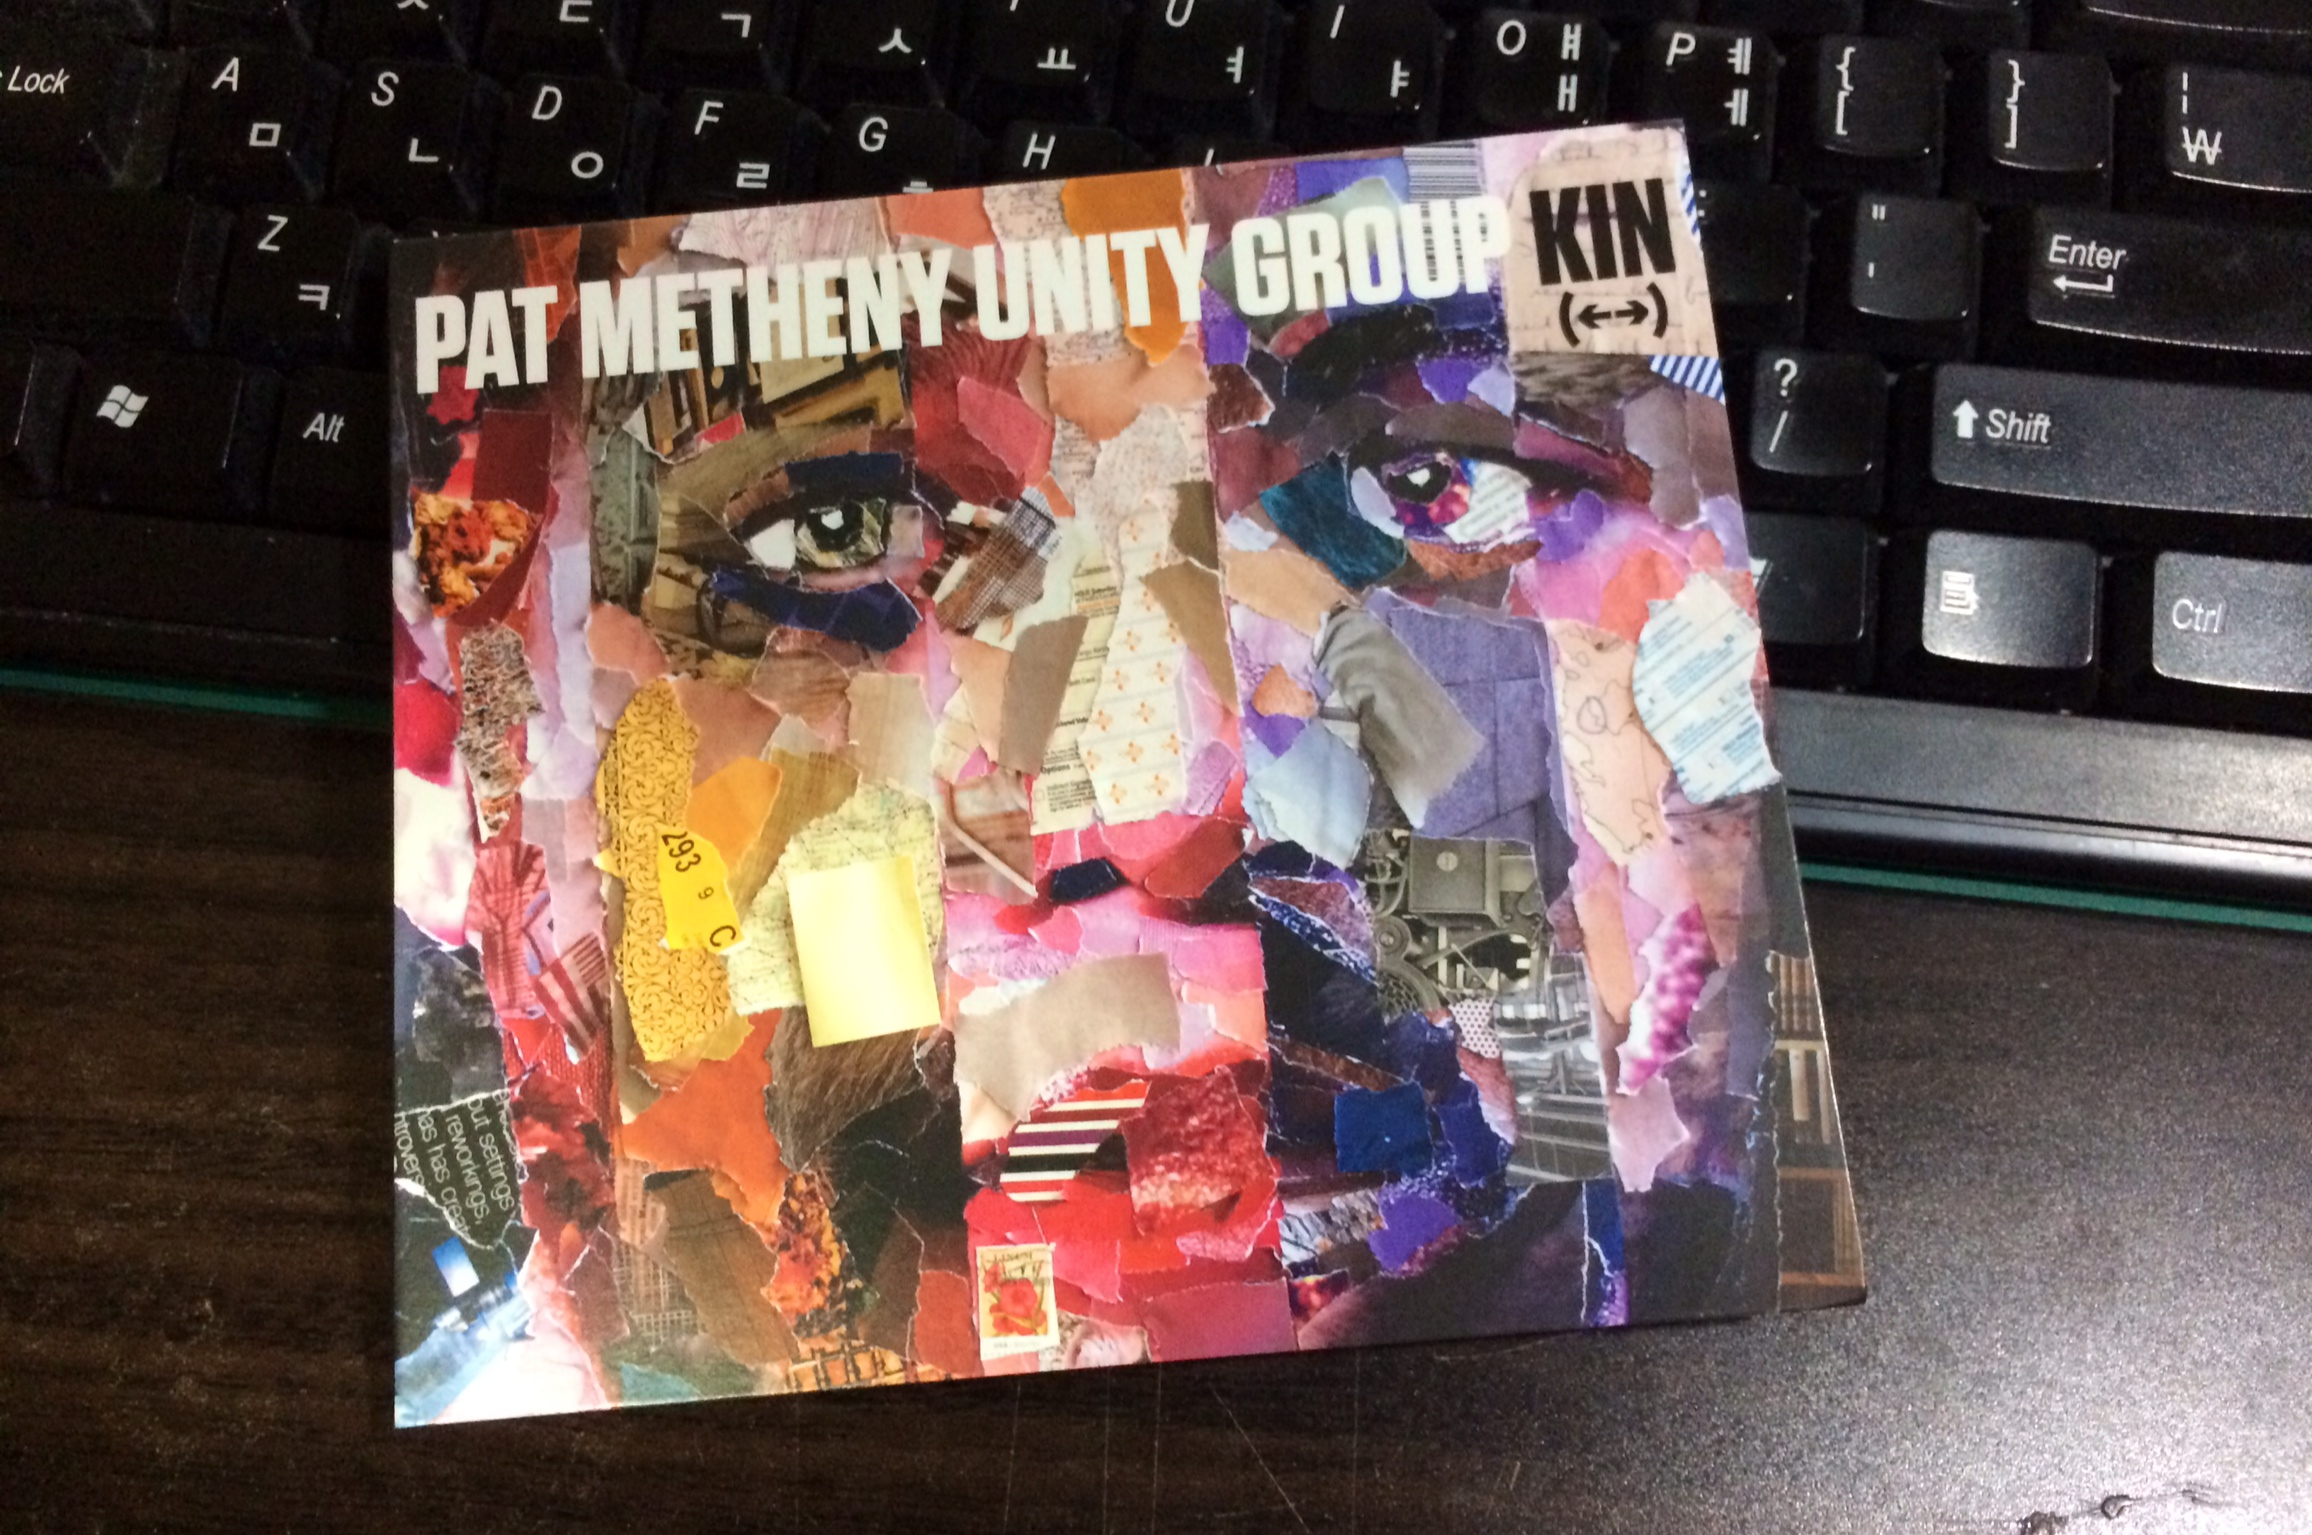 KIN(←→) - Pat Metheny Unity Group / 2014